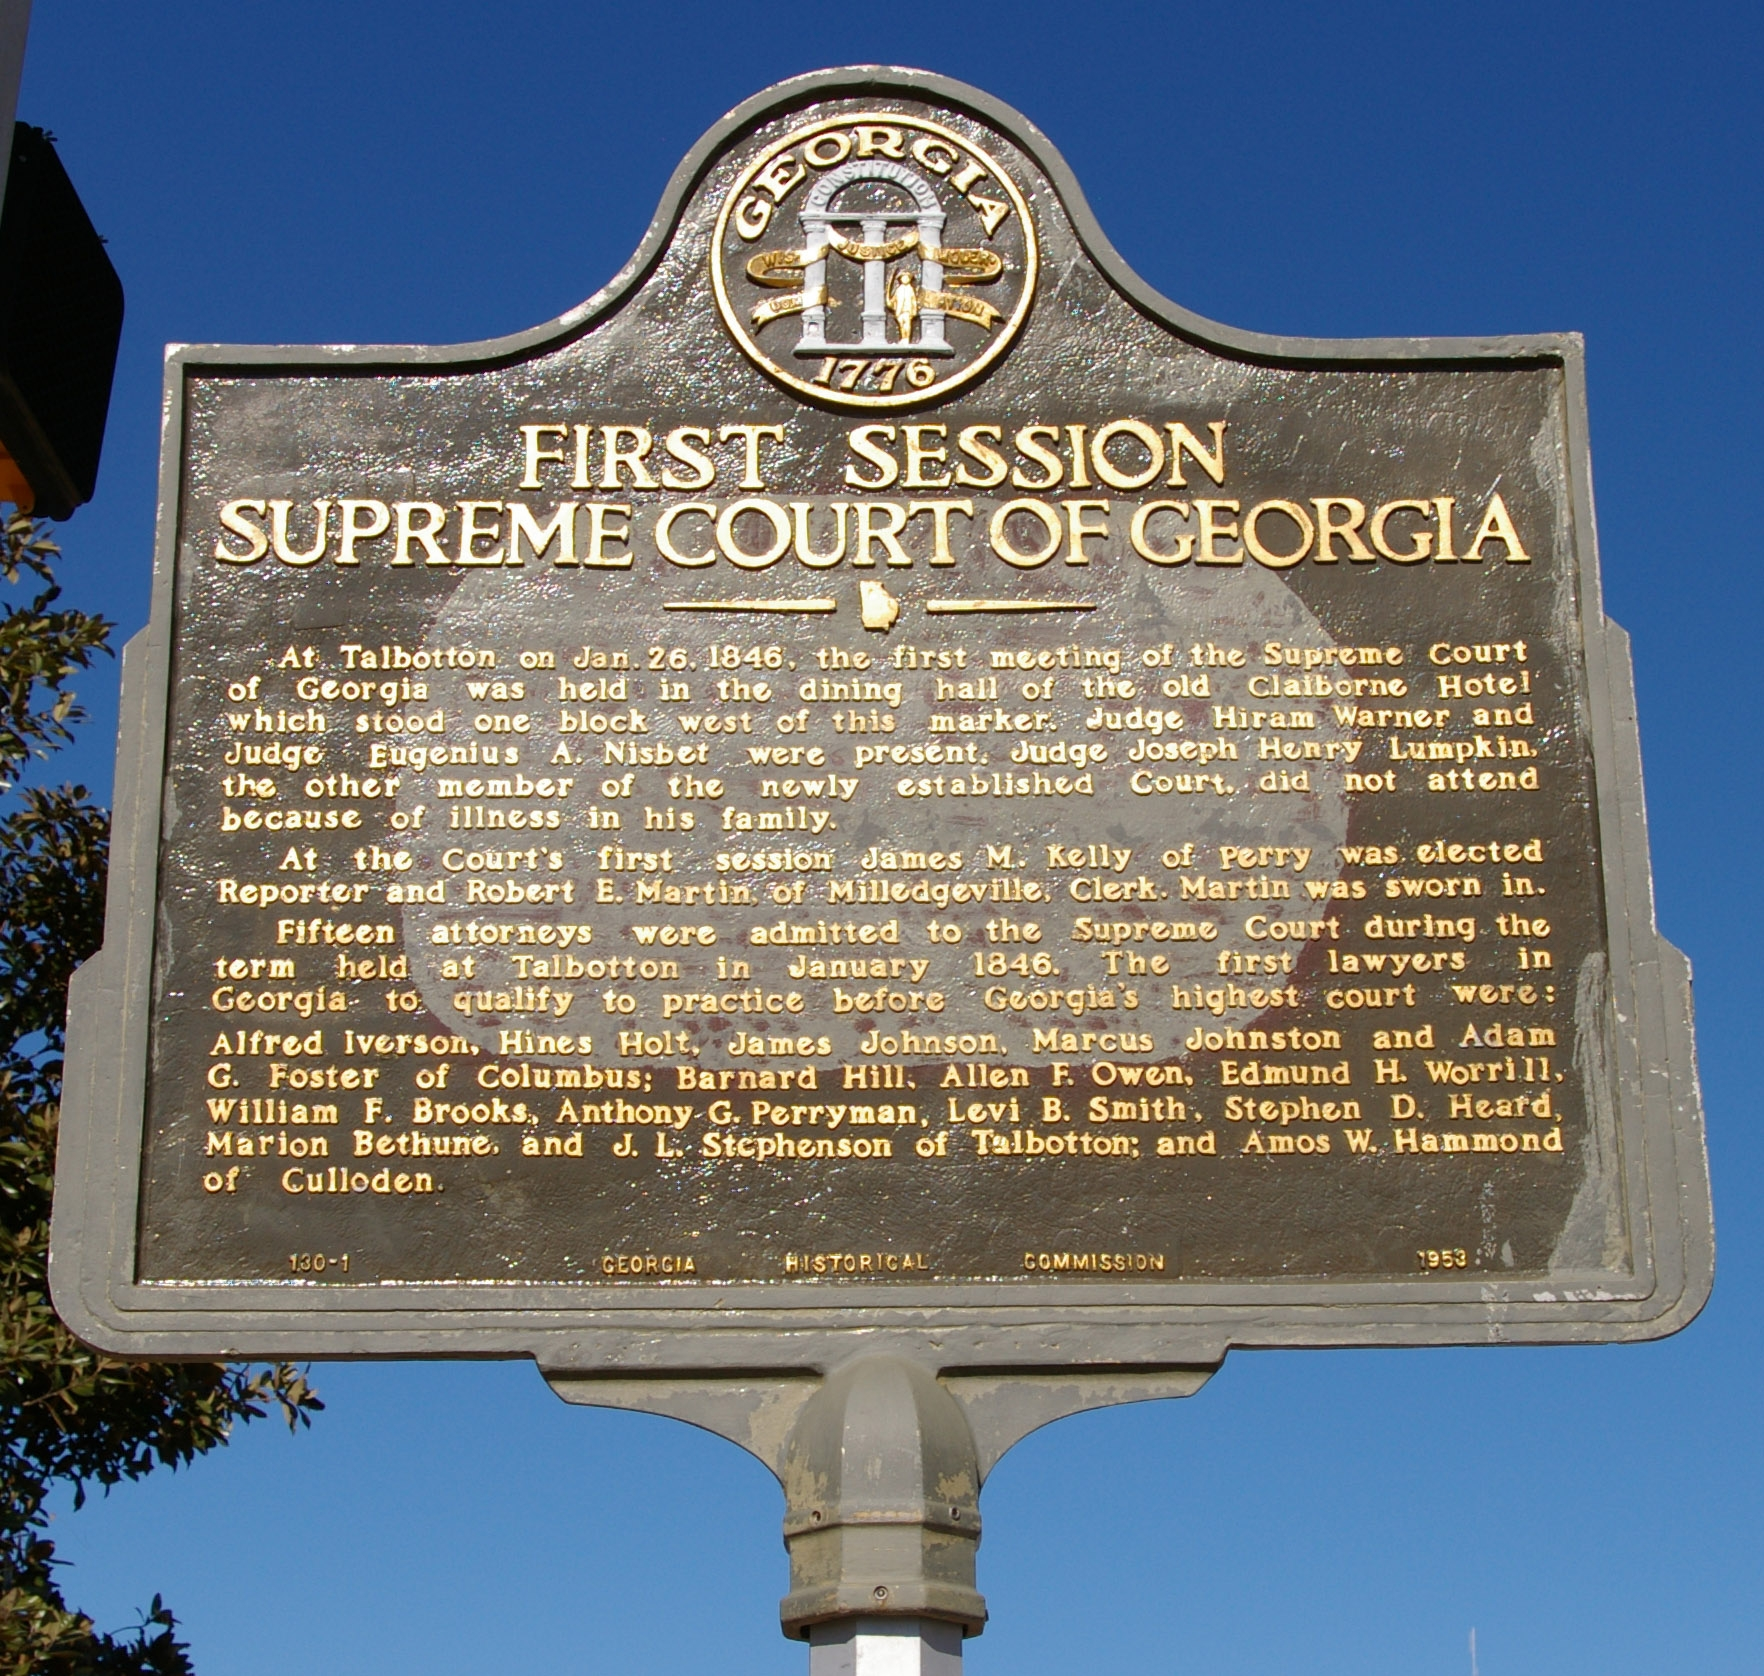 First Session Supreme Court of Georgia Marker